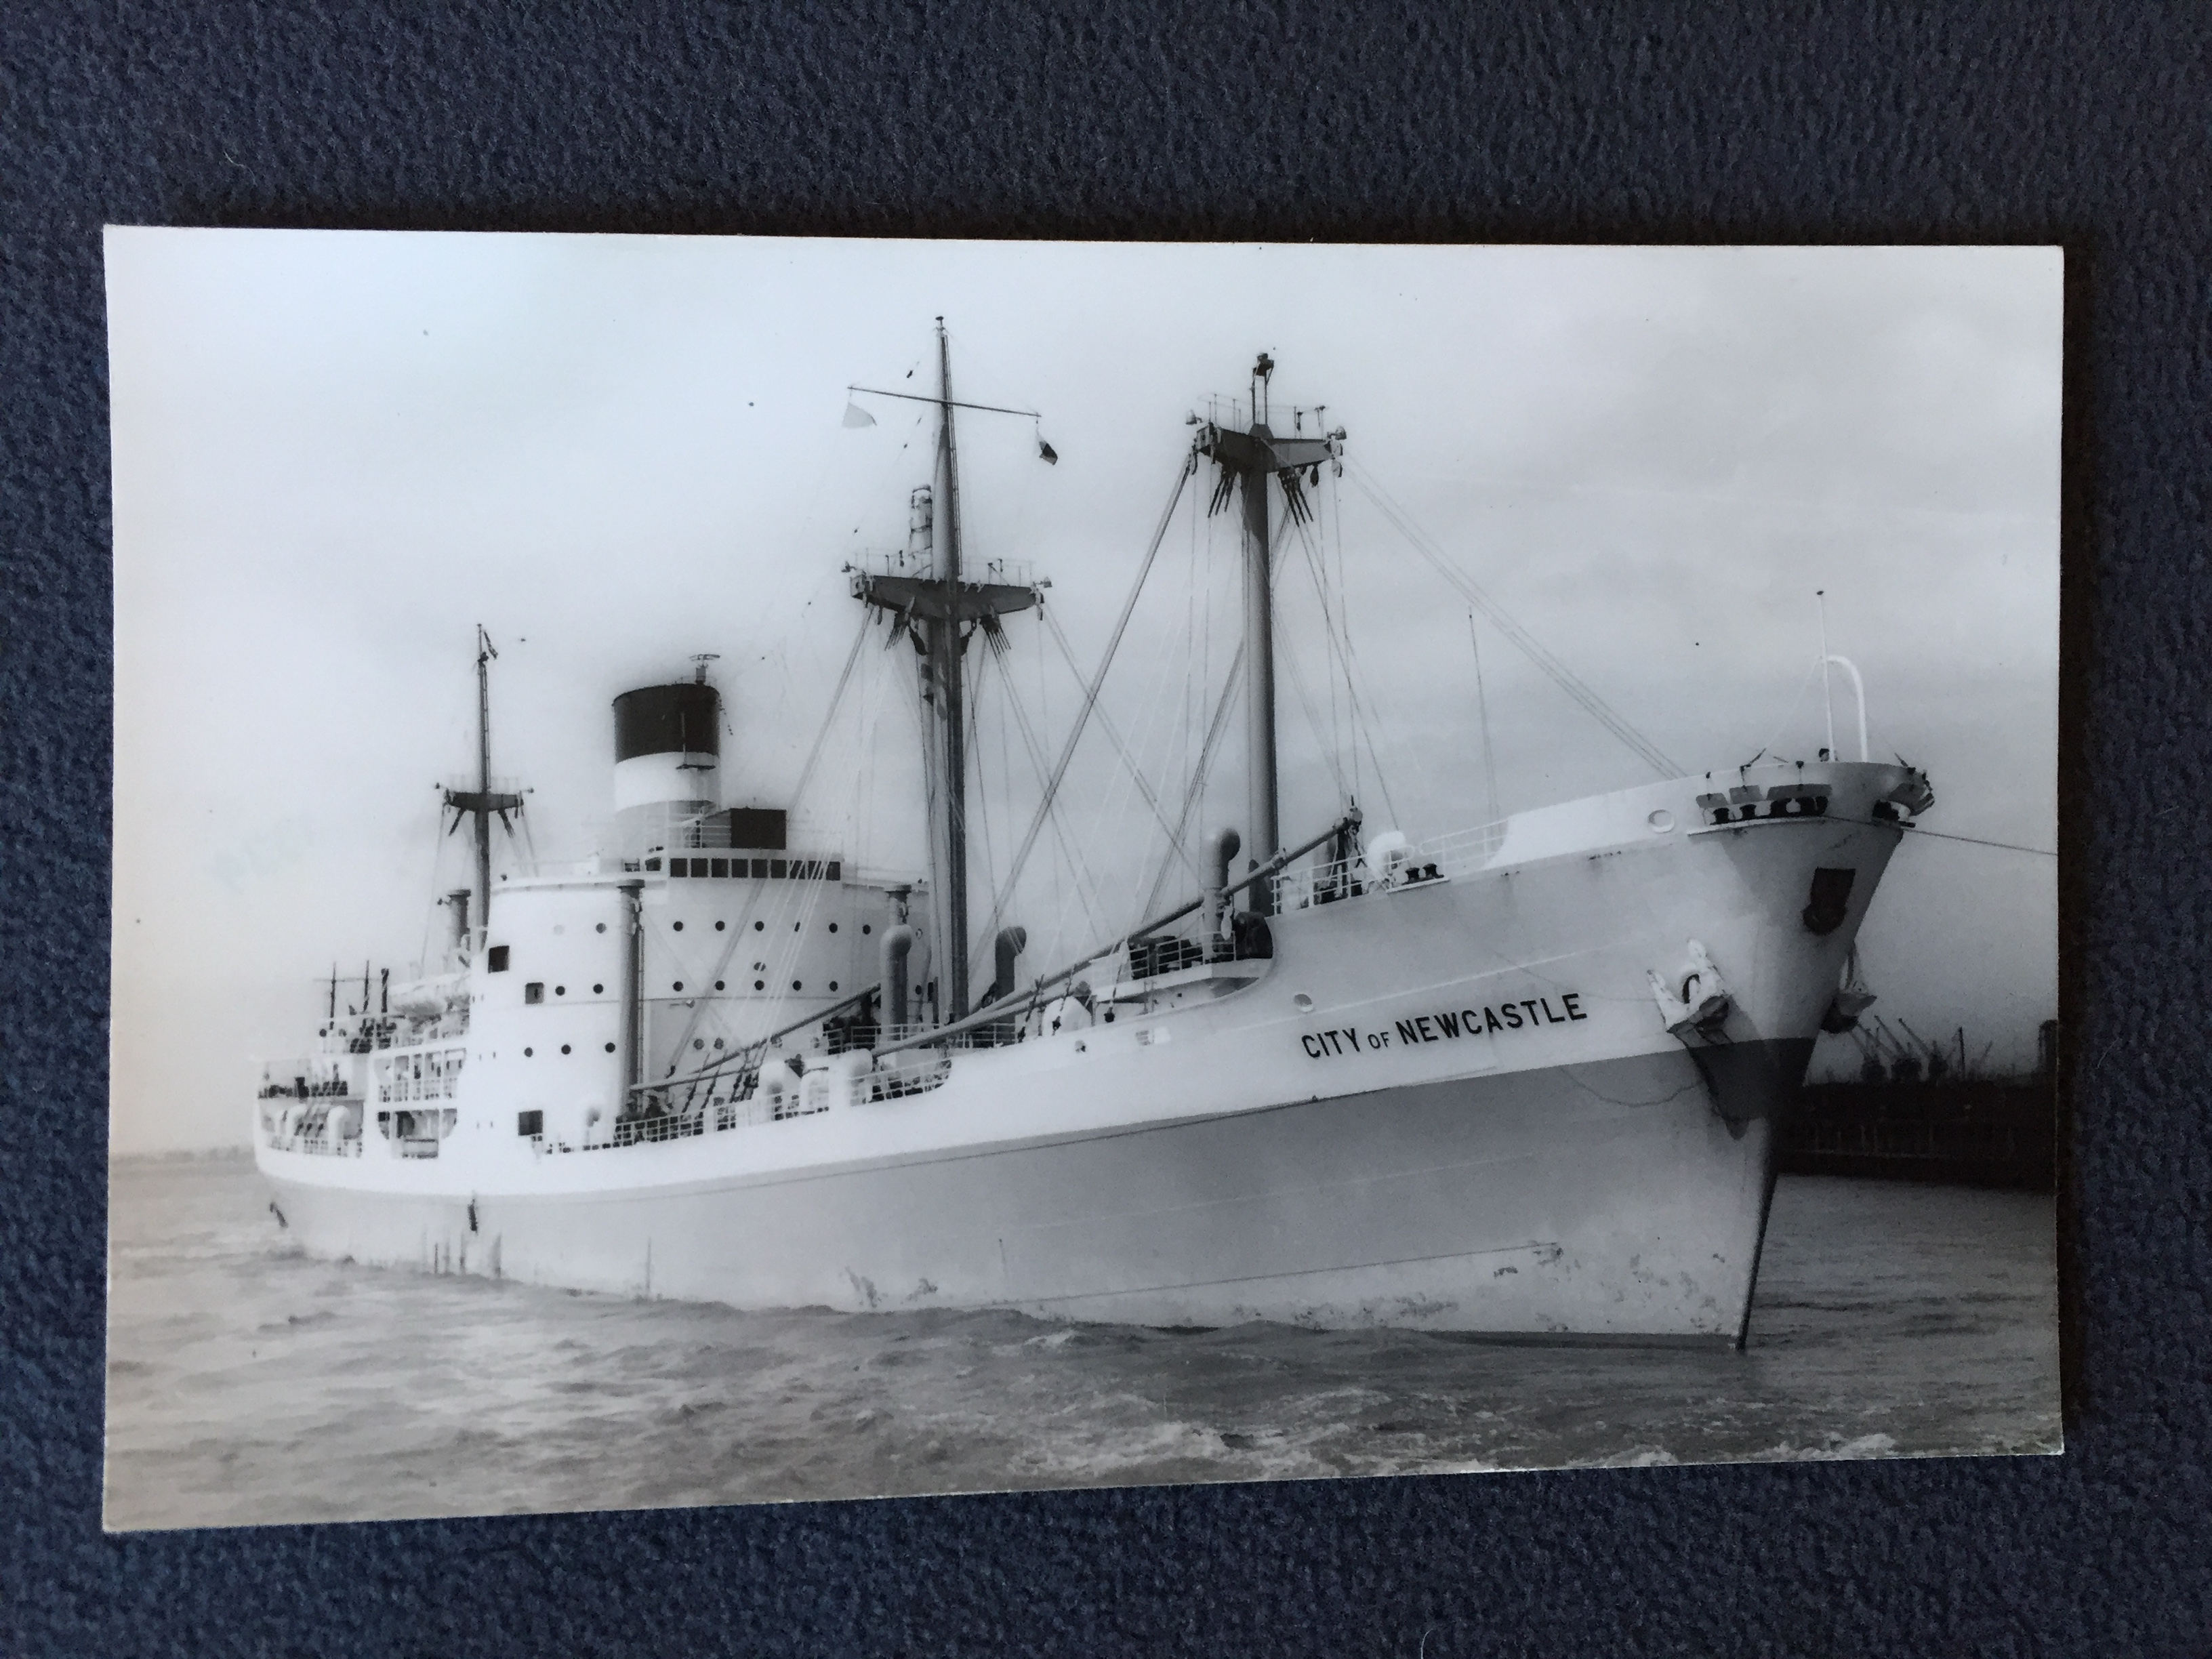 B&W PHOTOGRAPH FROM THE VESSEL CITY OF NEWCASTLE FROM THE ELLERMAN LINE